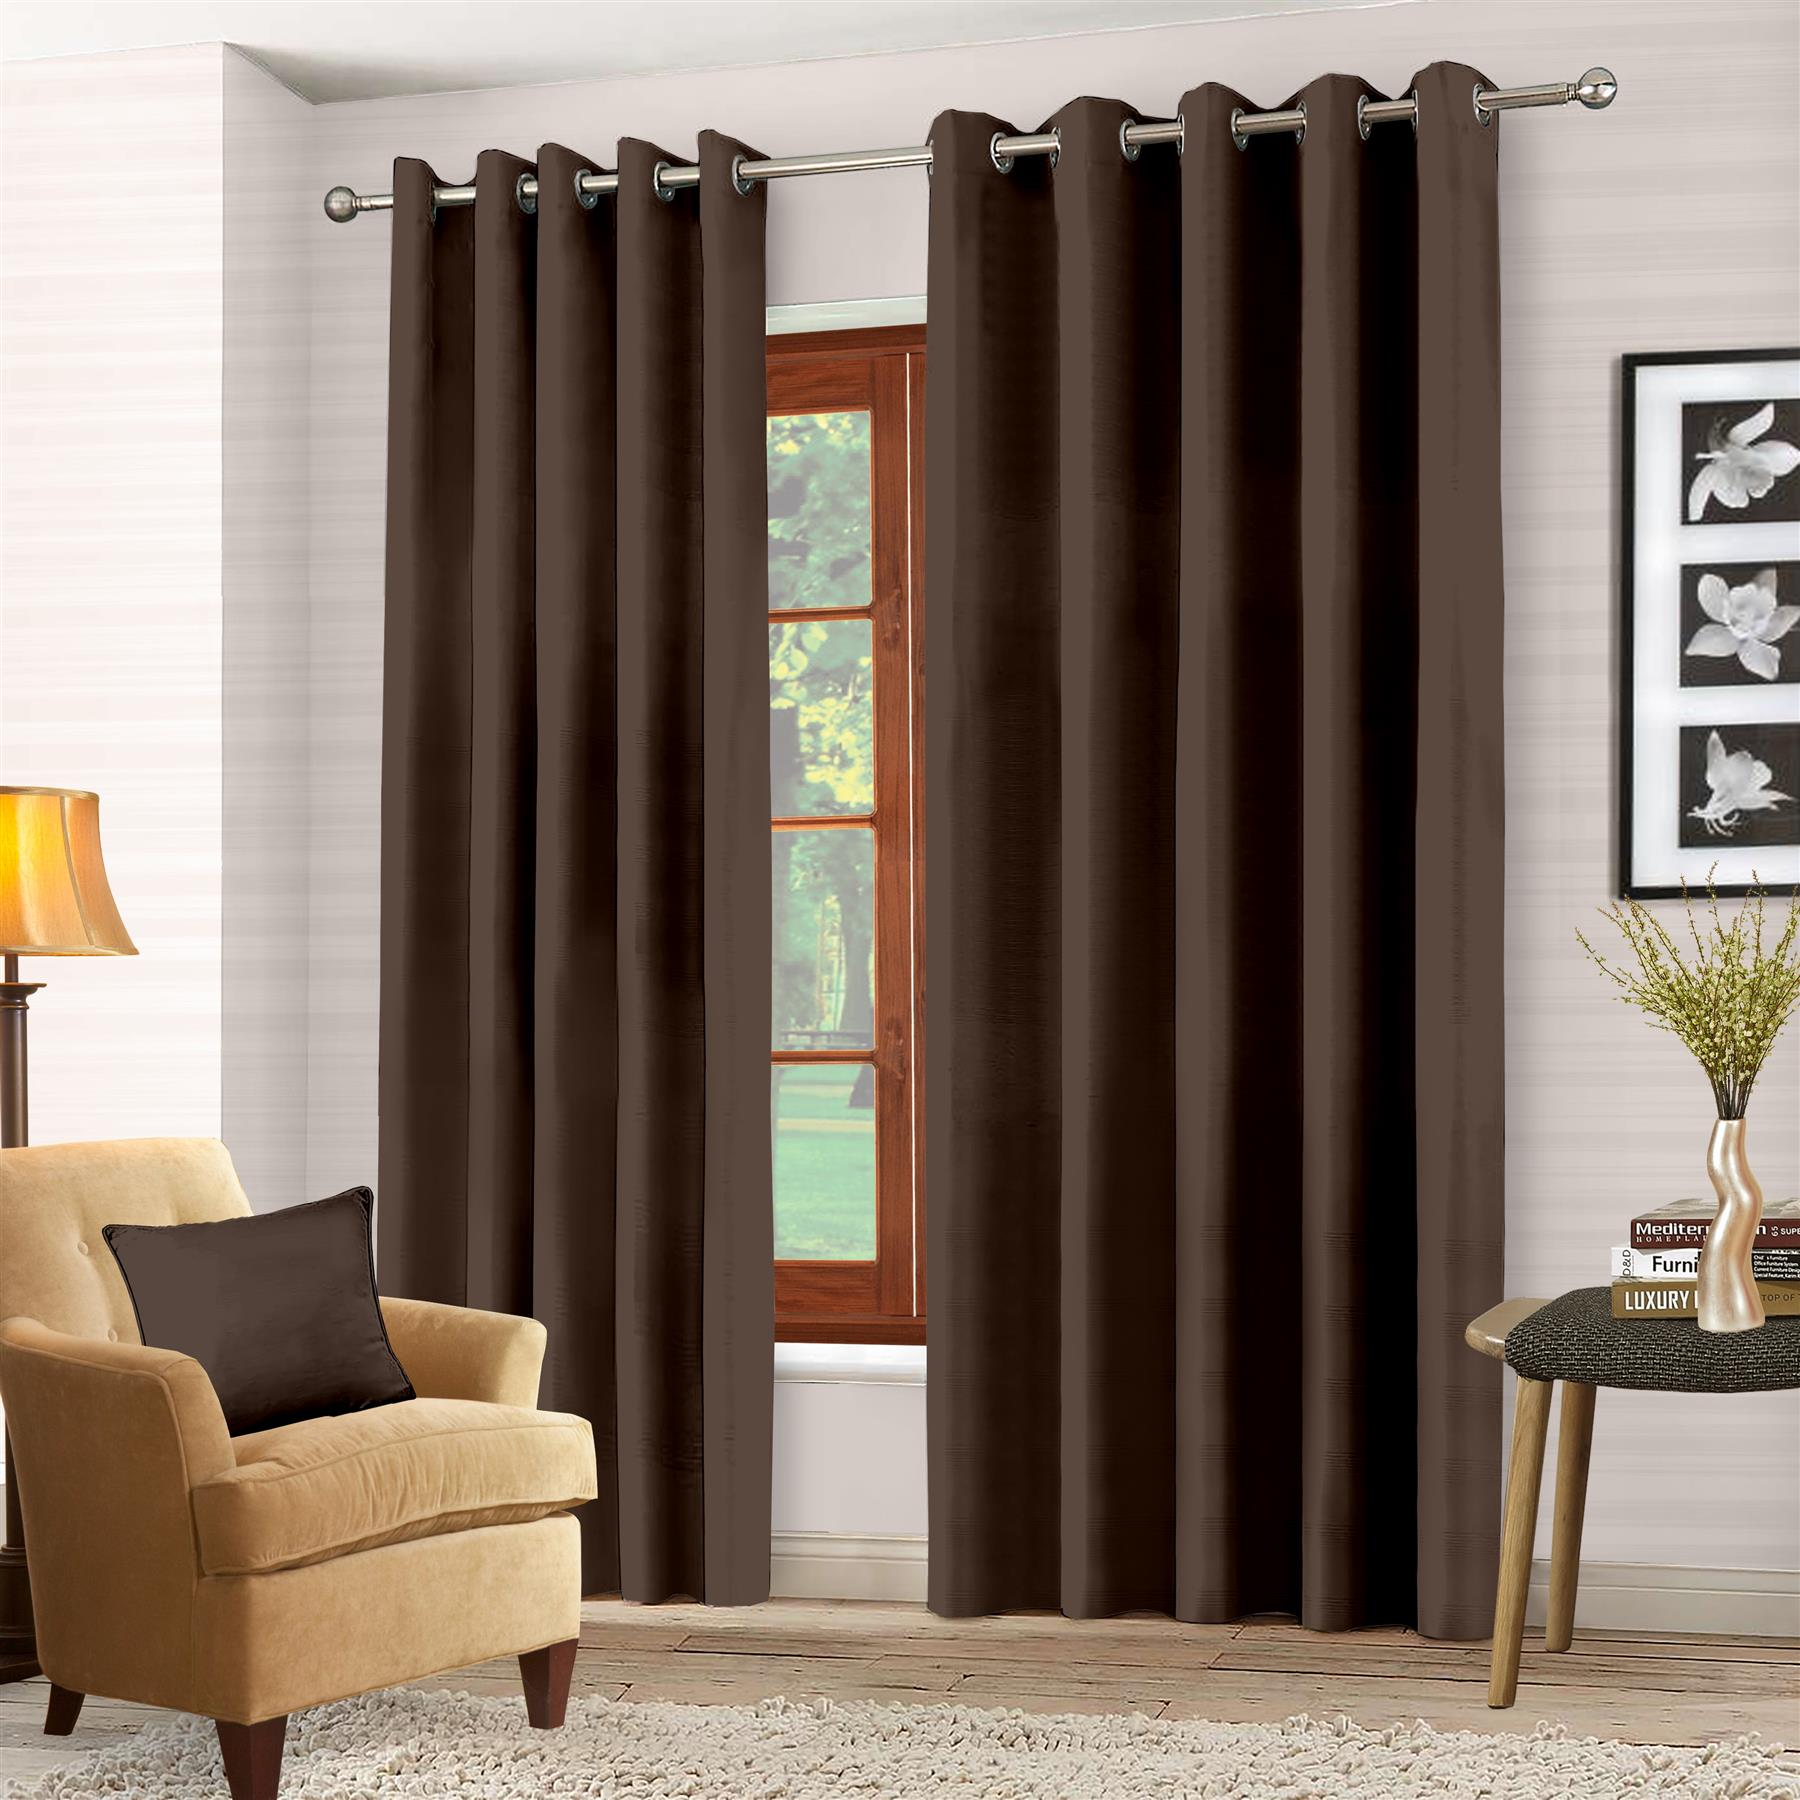 Luxury-Thermal-Blackout-Eyelet-Ring-Top-Curtains-Pair-with-tie-backs thumbnail 12